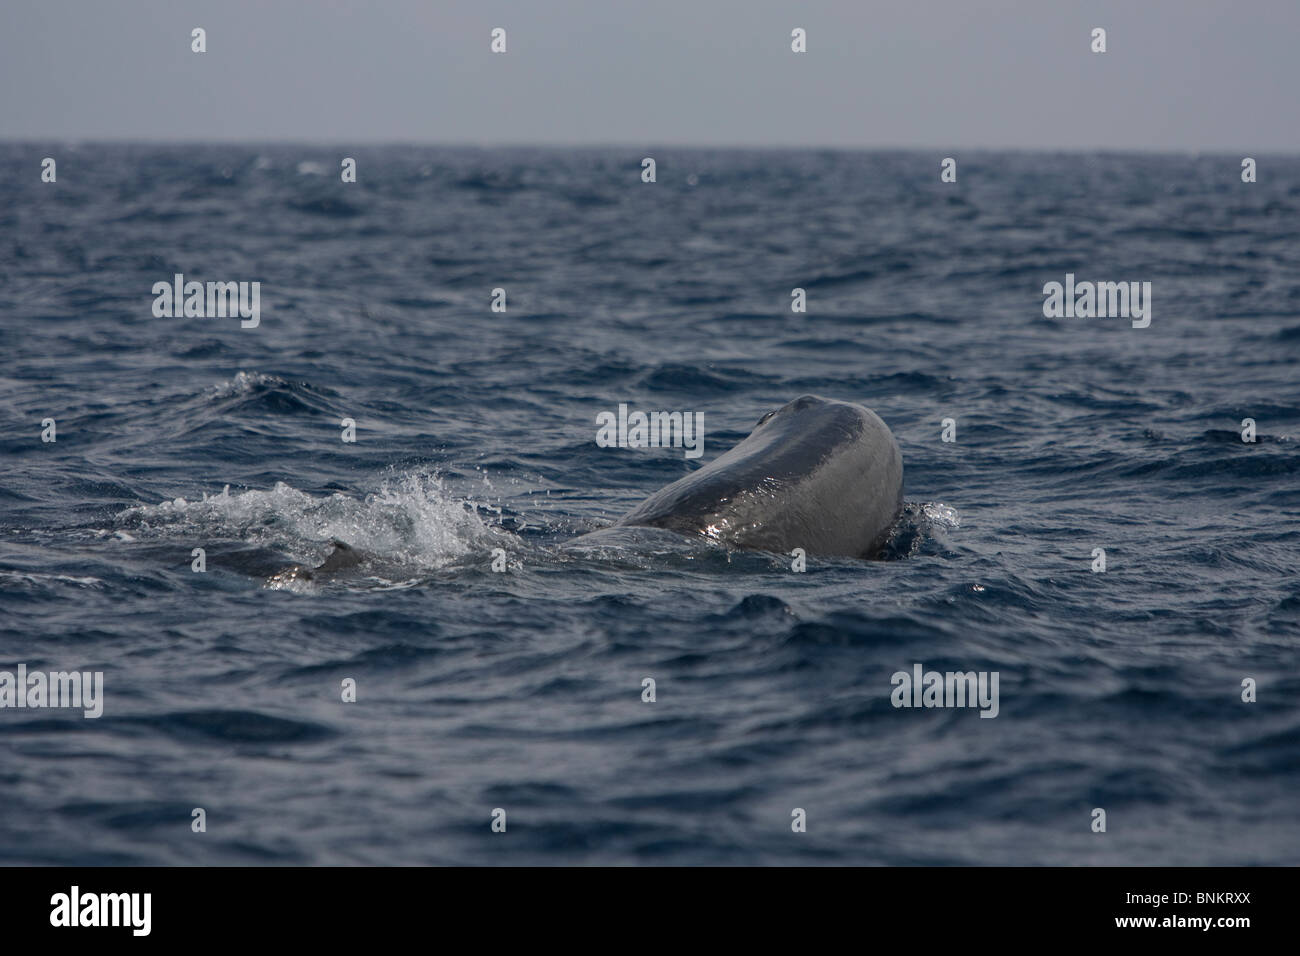 Sperm whale Cachalote Pottwal Physeter macrocephalus Pico Azores Portugal head with blowhole - Stock Image